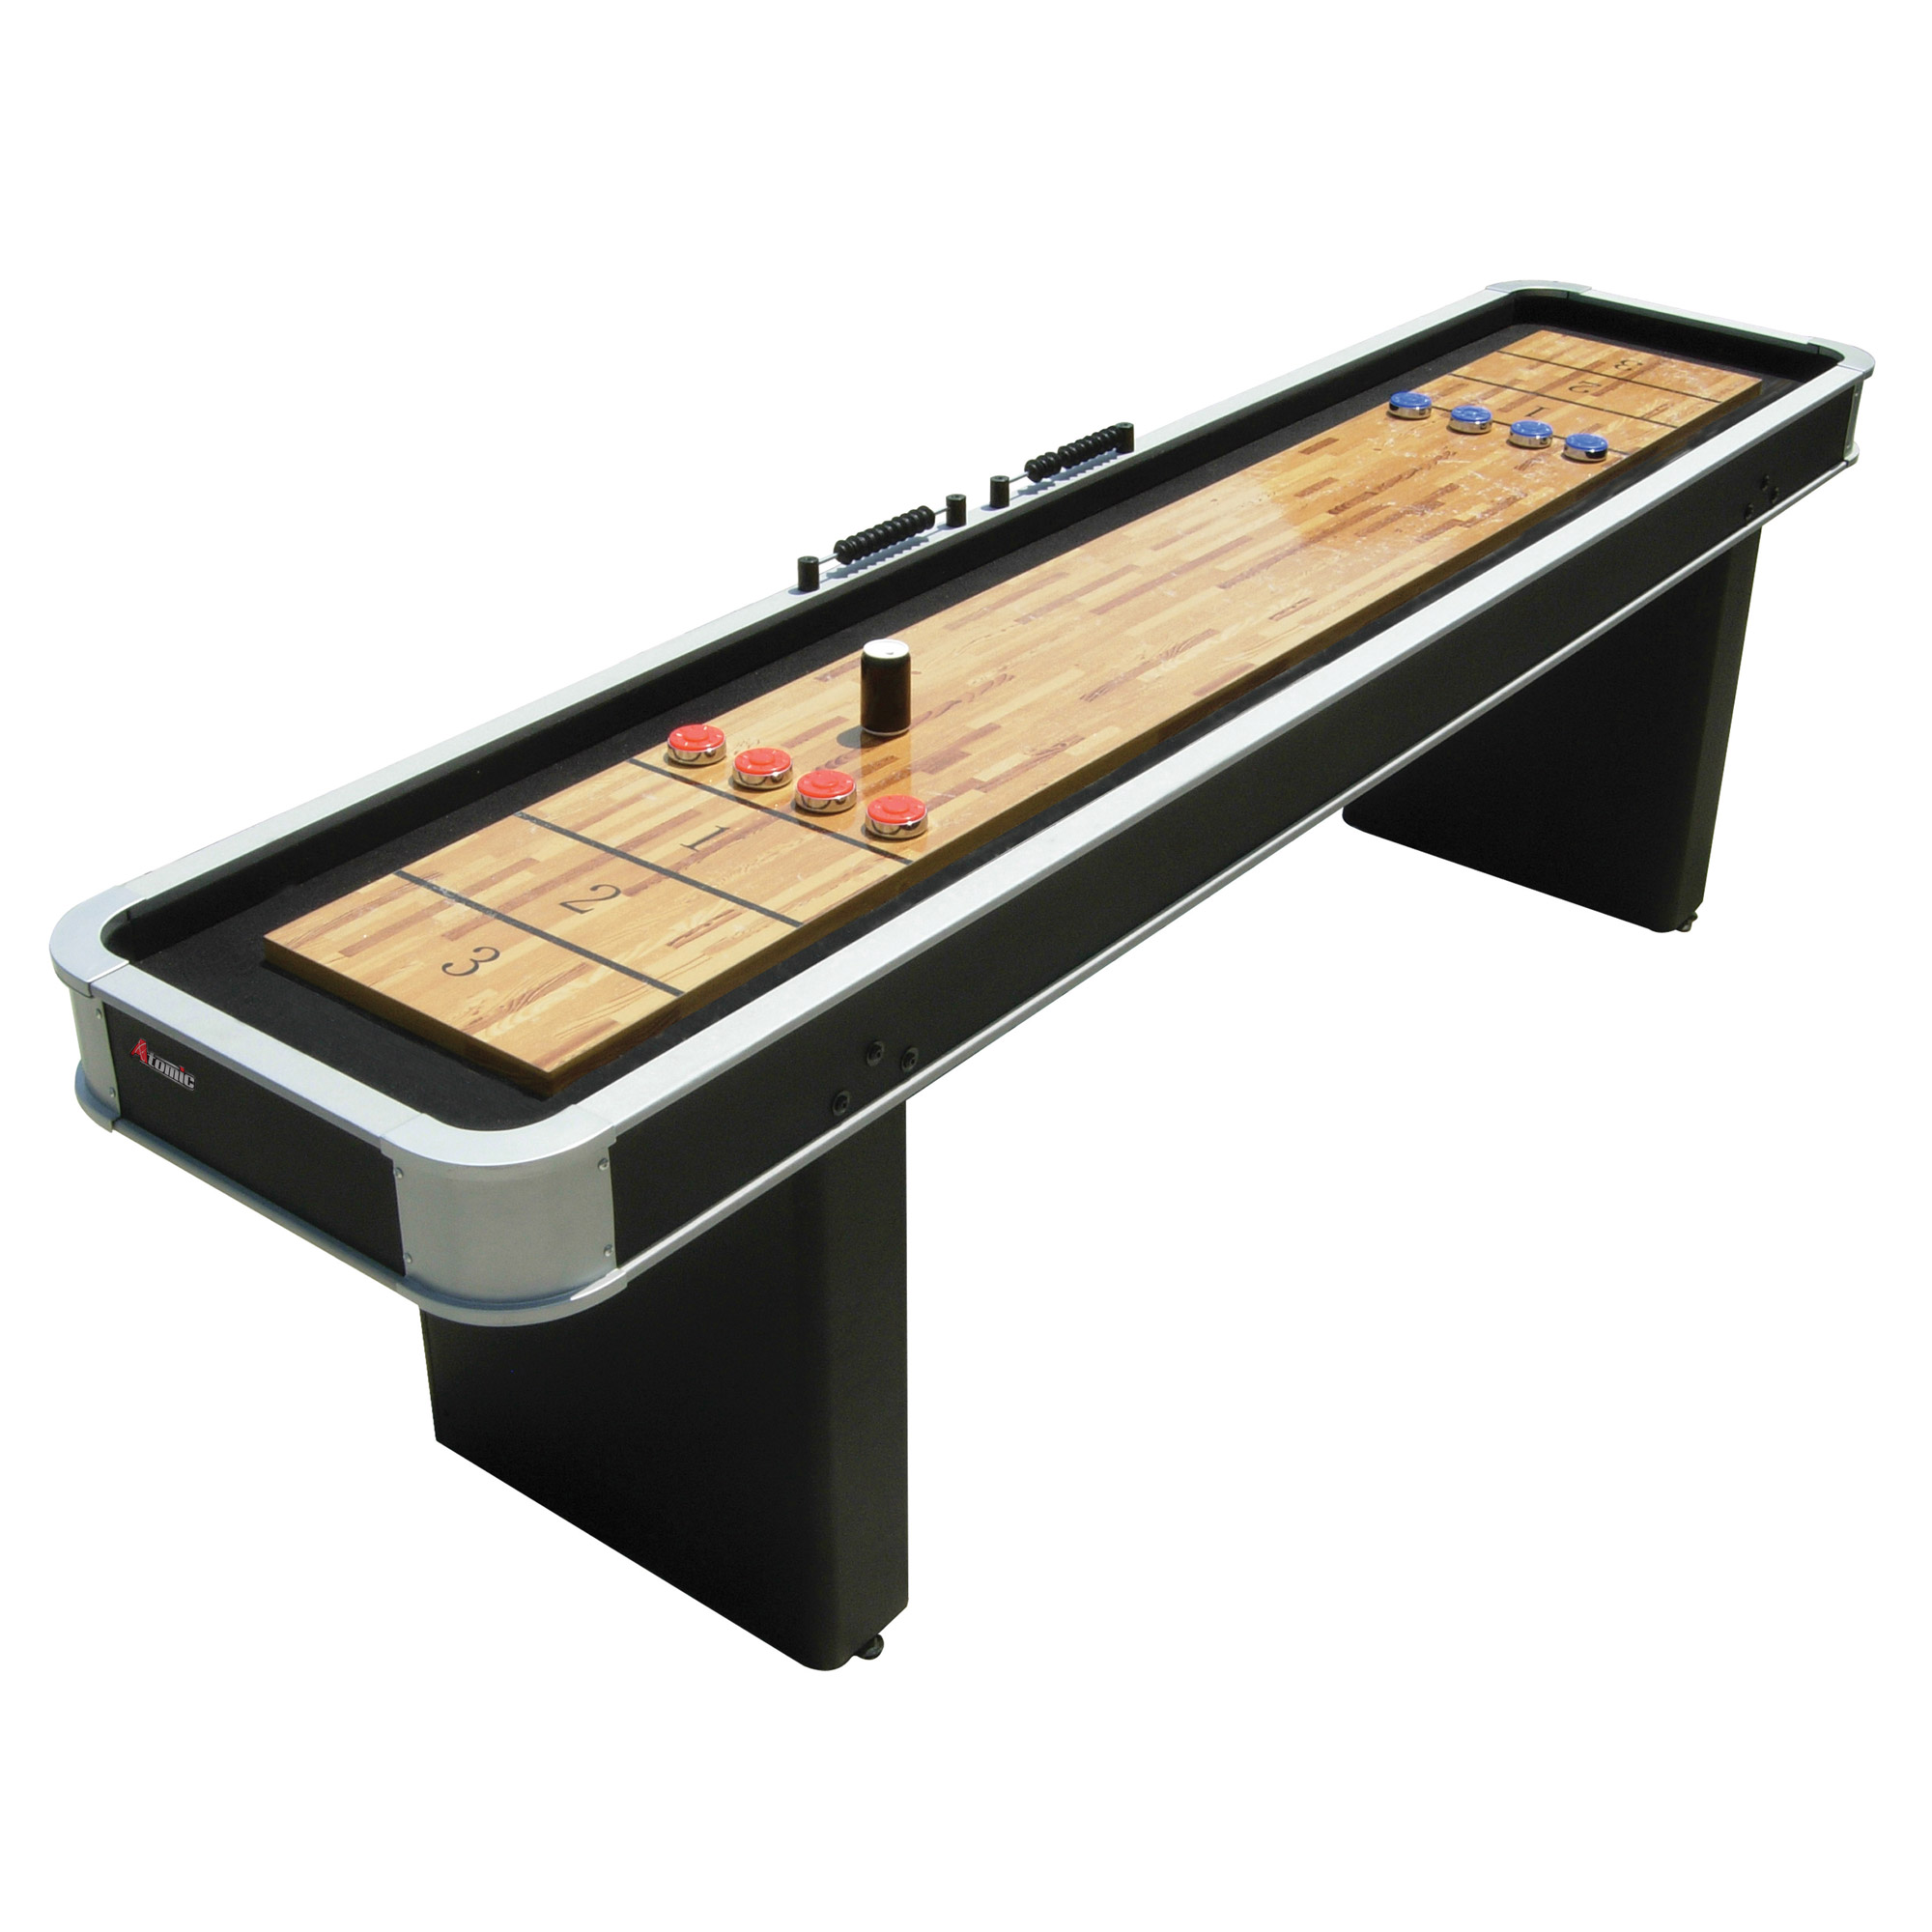 Atomic 9 Platinum Recreation Room Shuffleboard Table and Pucks